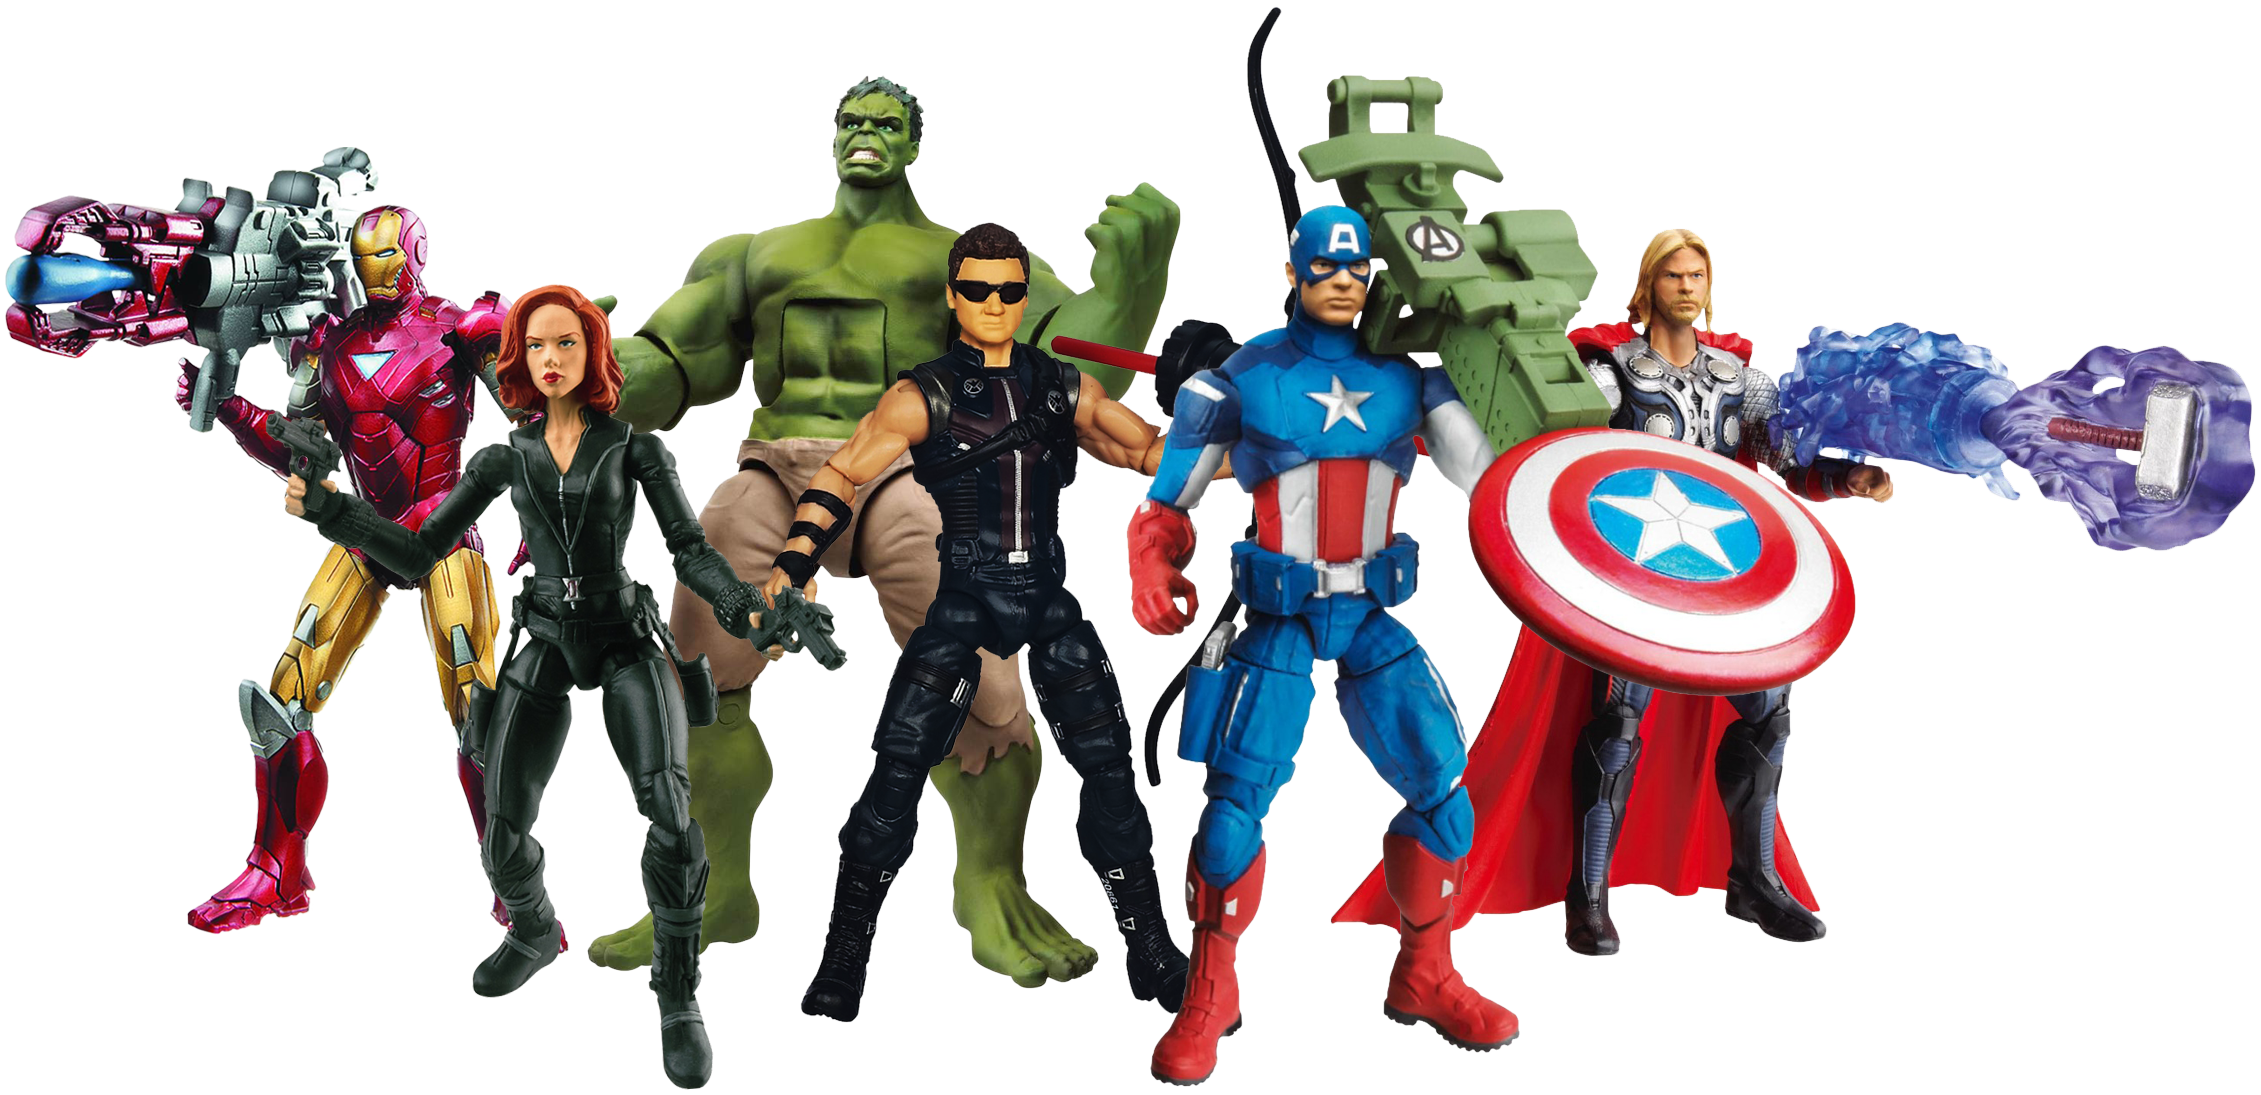 Free Avengers PNG Transparent Images, Download Free Clip Art.